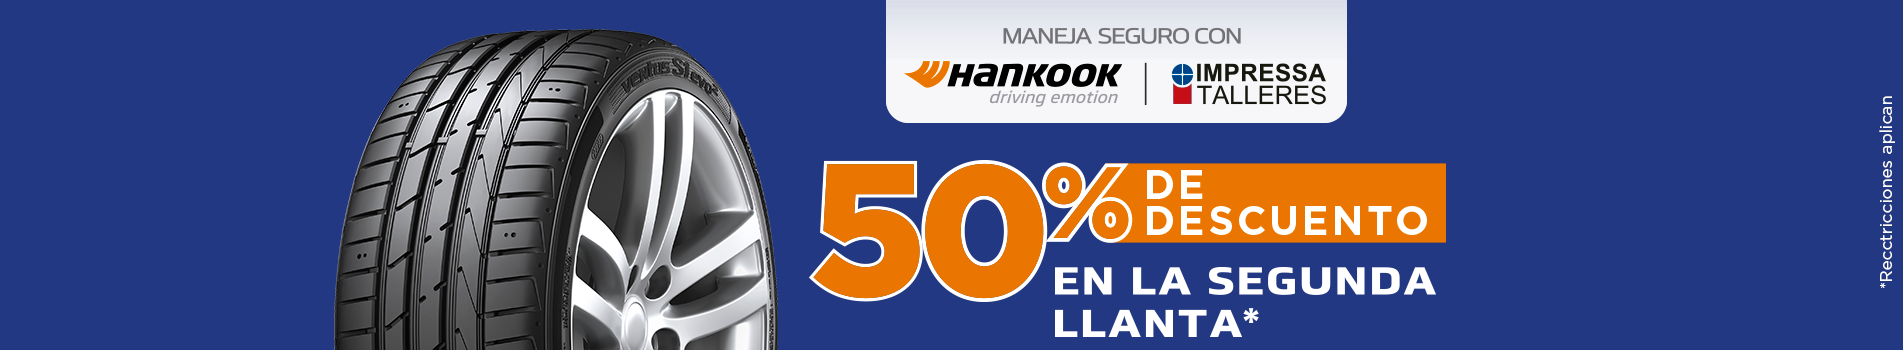 hankook-IT